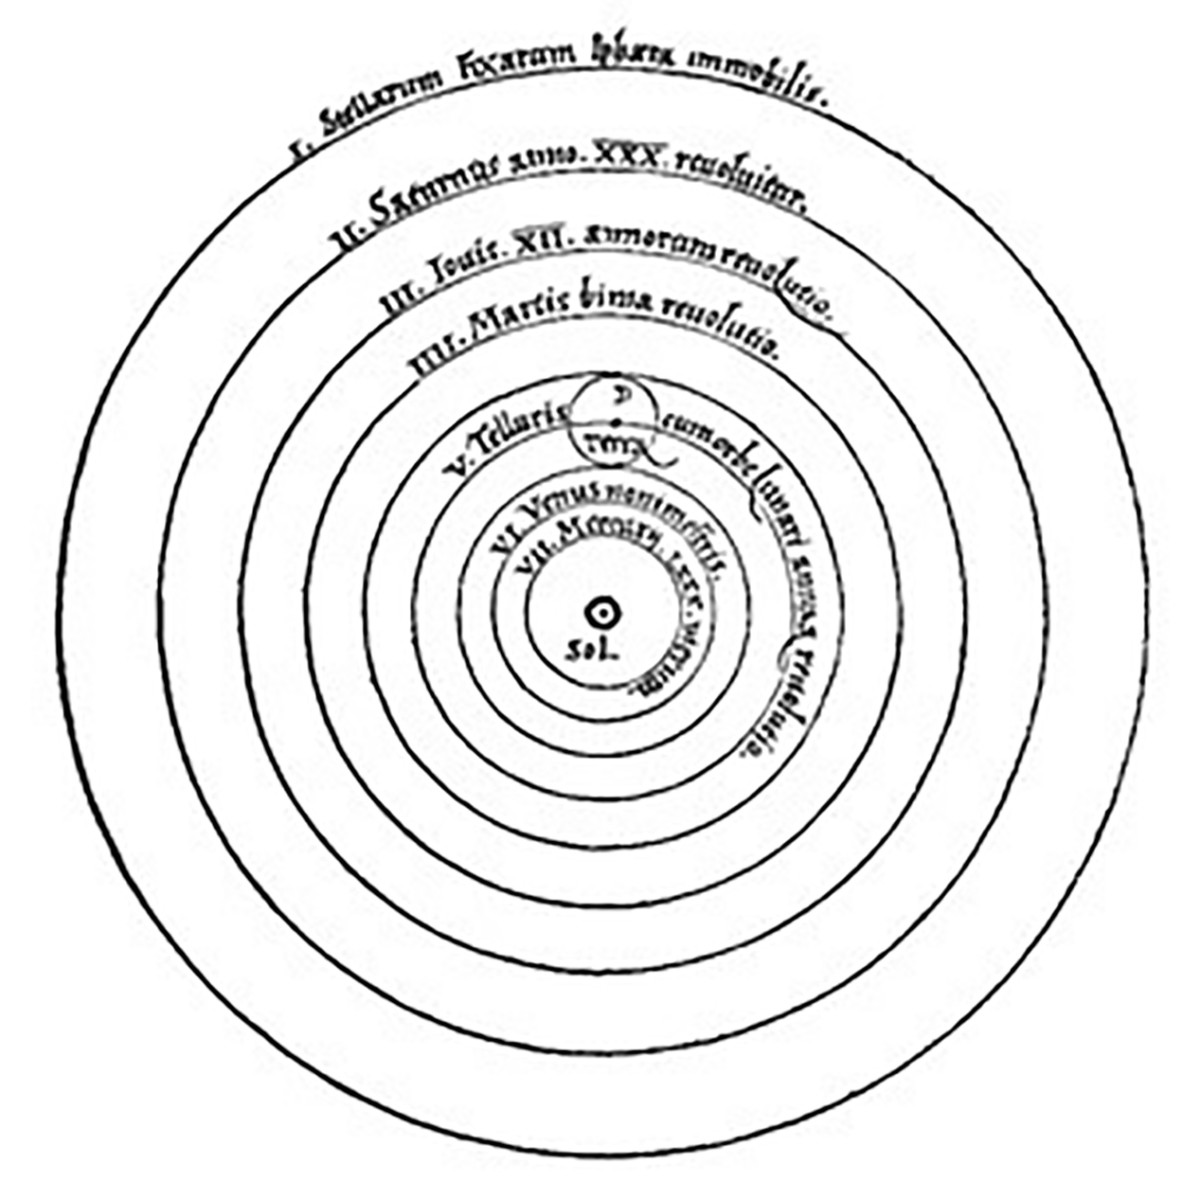 Copernicus' great book Revolutions contains a diagram that overturns all previous conceptions of the Universe. The central position is occupied not by the Earth, but by the Sun (Sol).